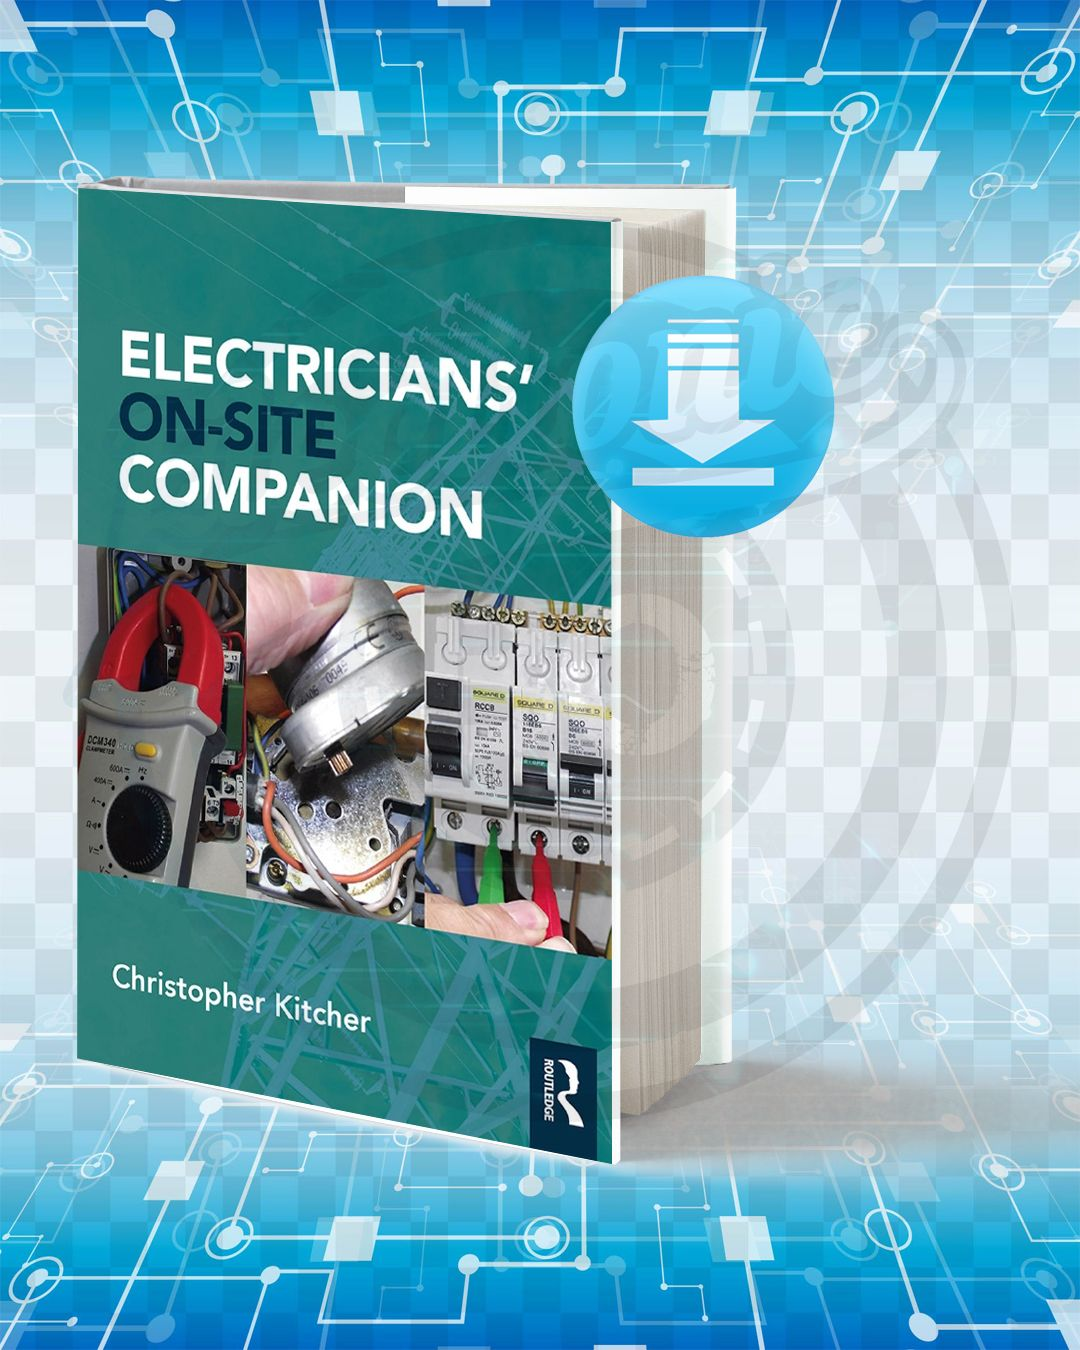 Download Electricians' OnSite Companion pdf. Electrical